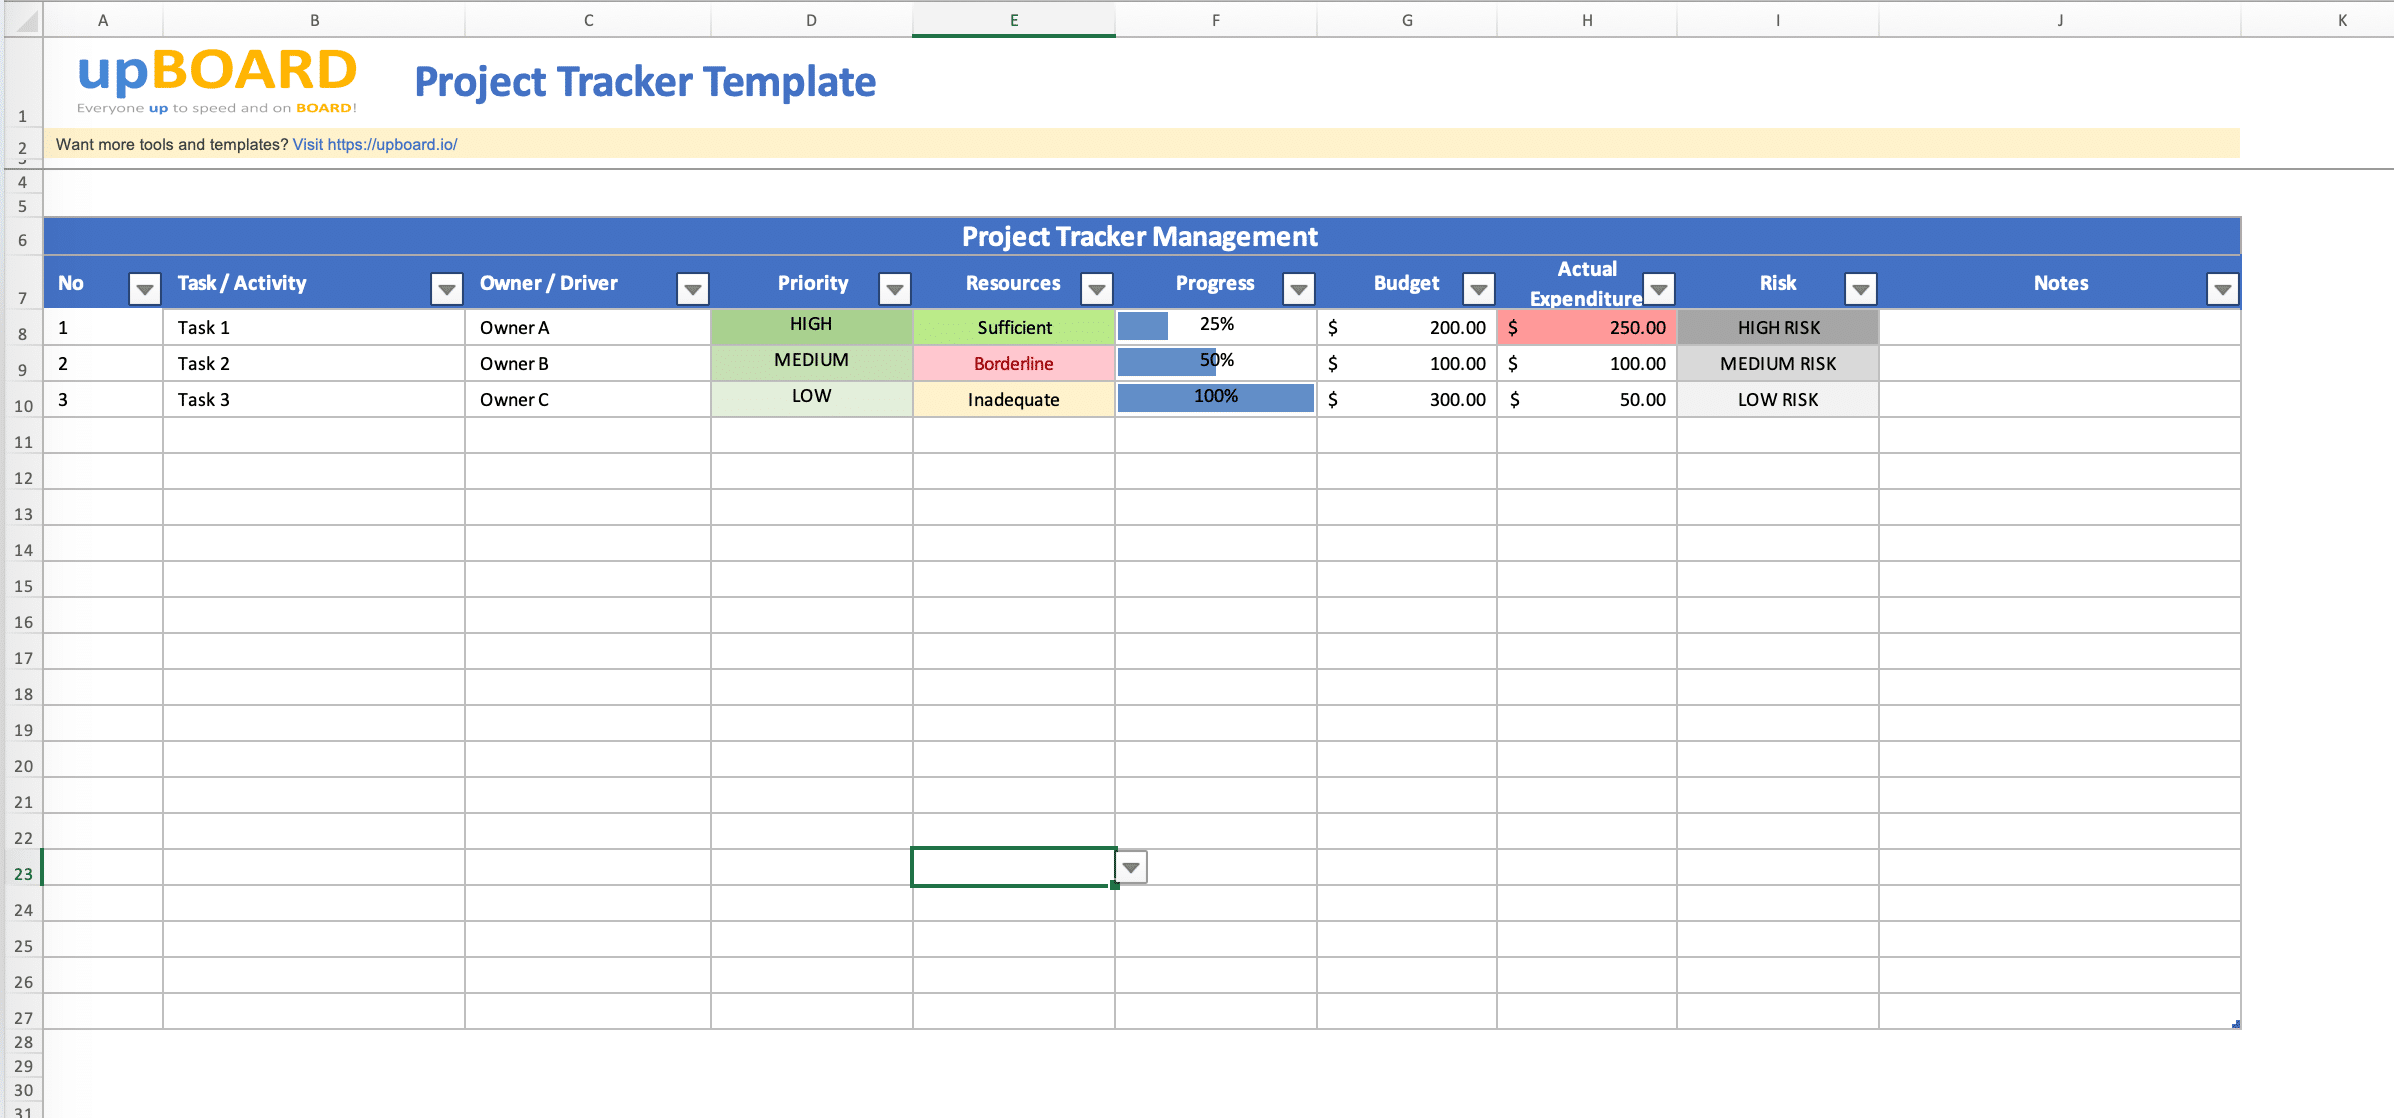 Full Size of Template Financial Plan For Startup Business Free Contract Excel Tracker